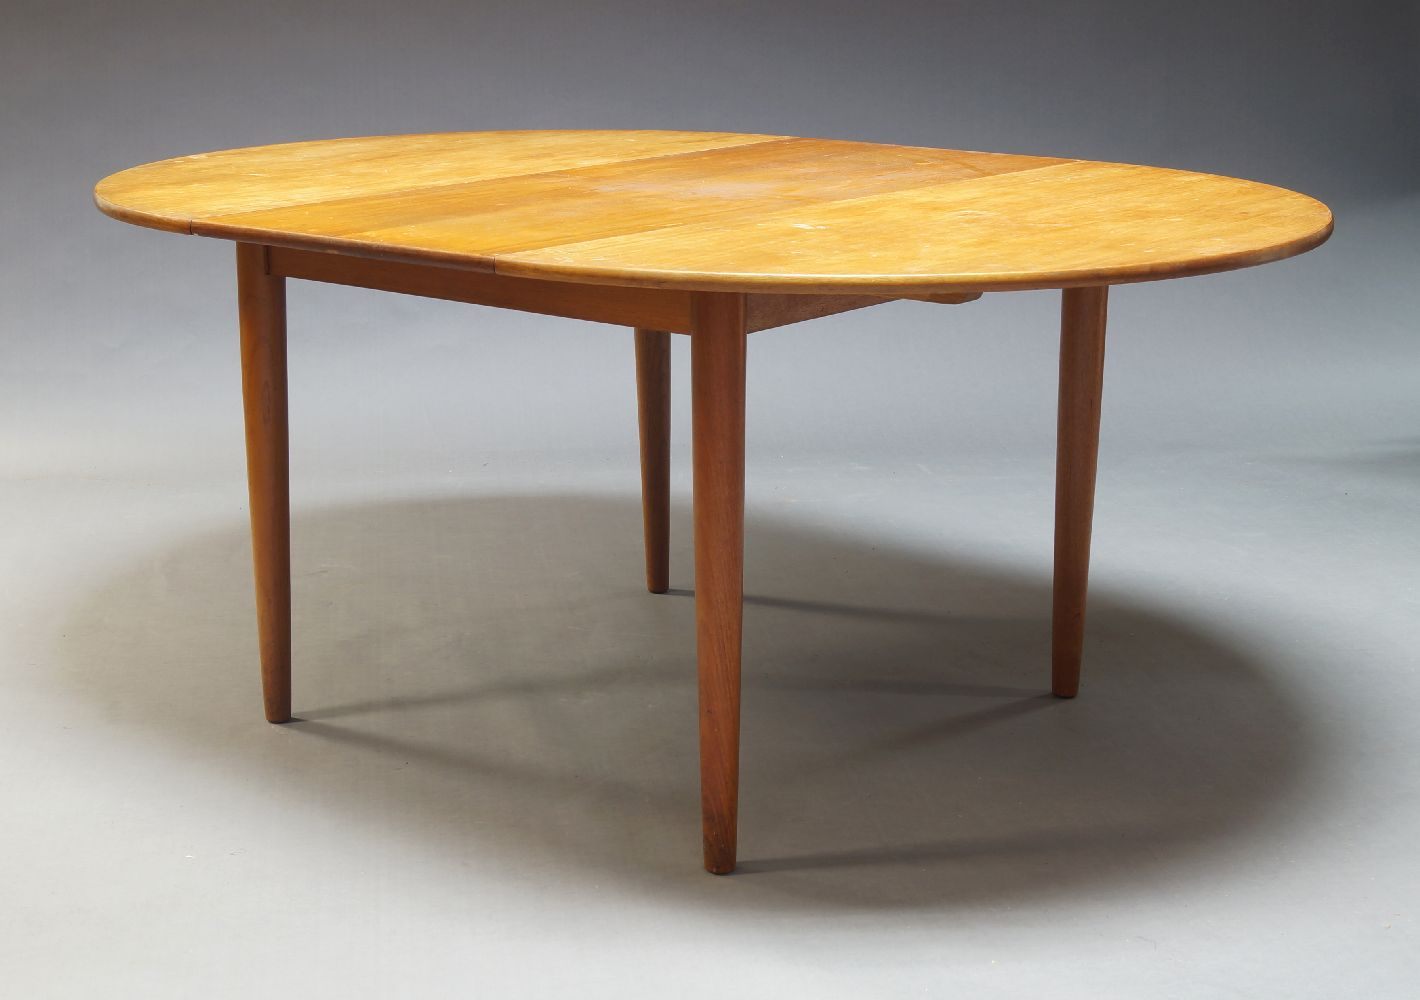 A Danish teak extending dining table, c.1960, the rounded top with central fold out leaf, on